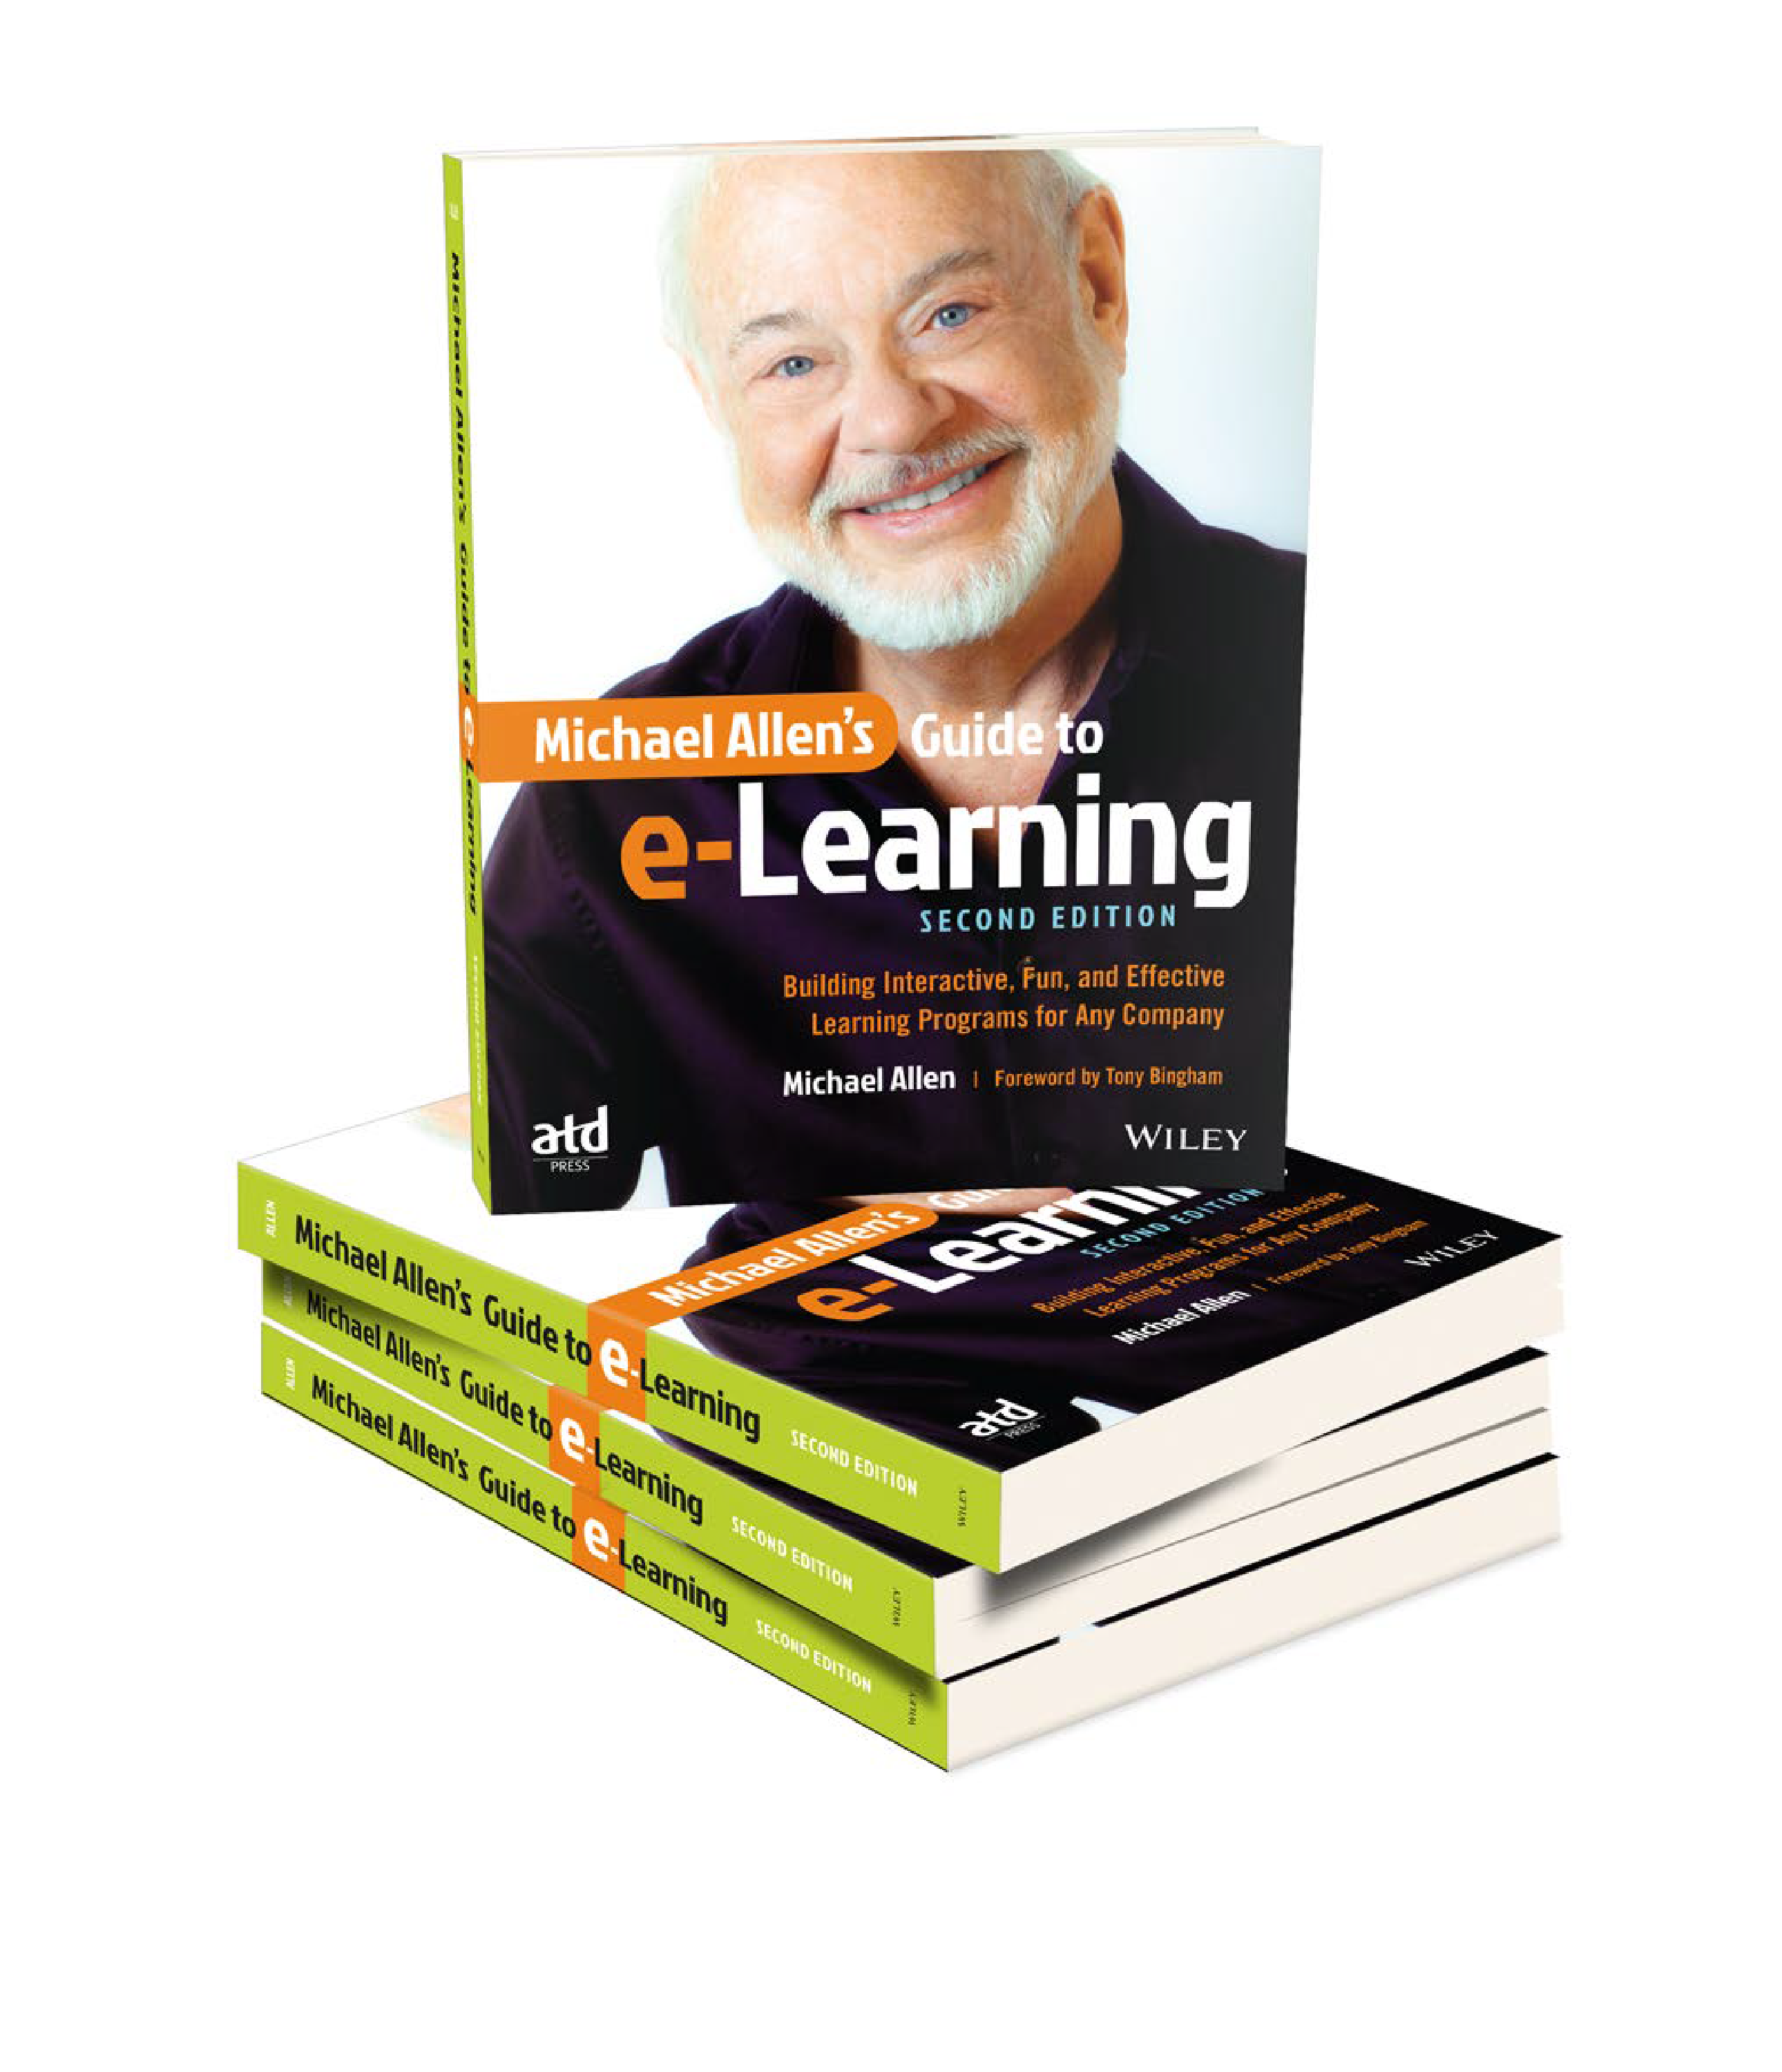 Guide-to-eLearning-2nd-edition-3D-Image-Stack-Books.png